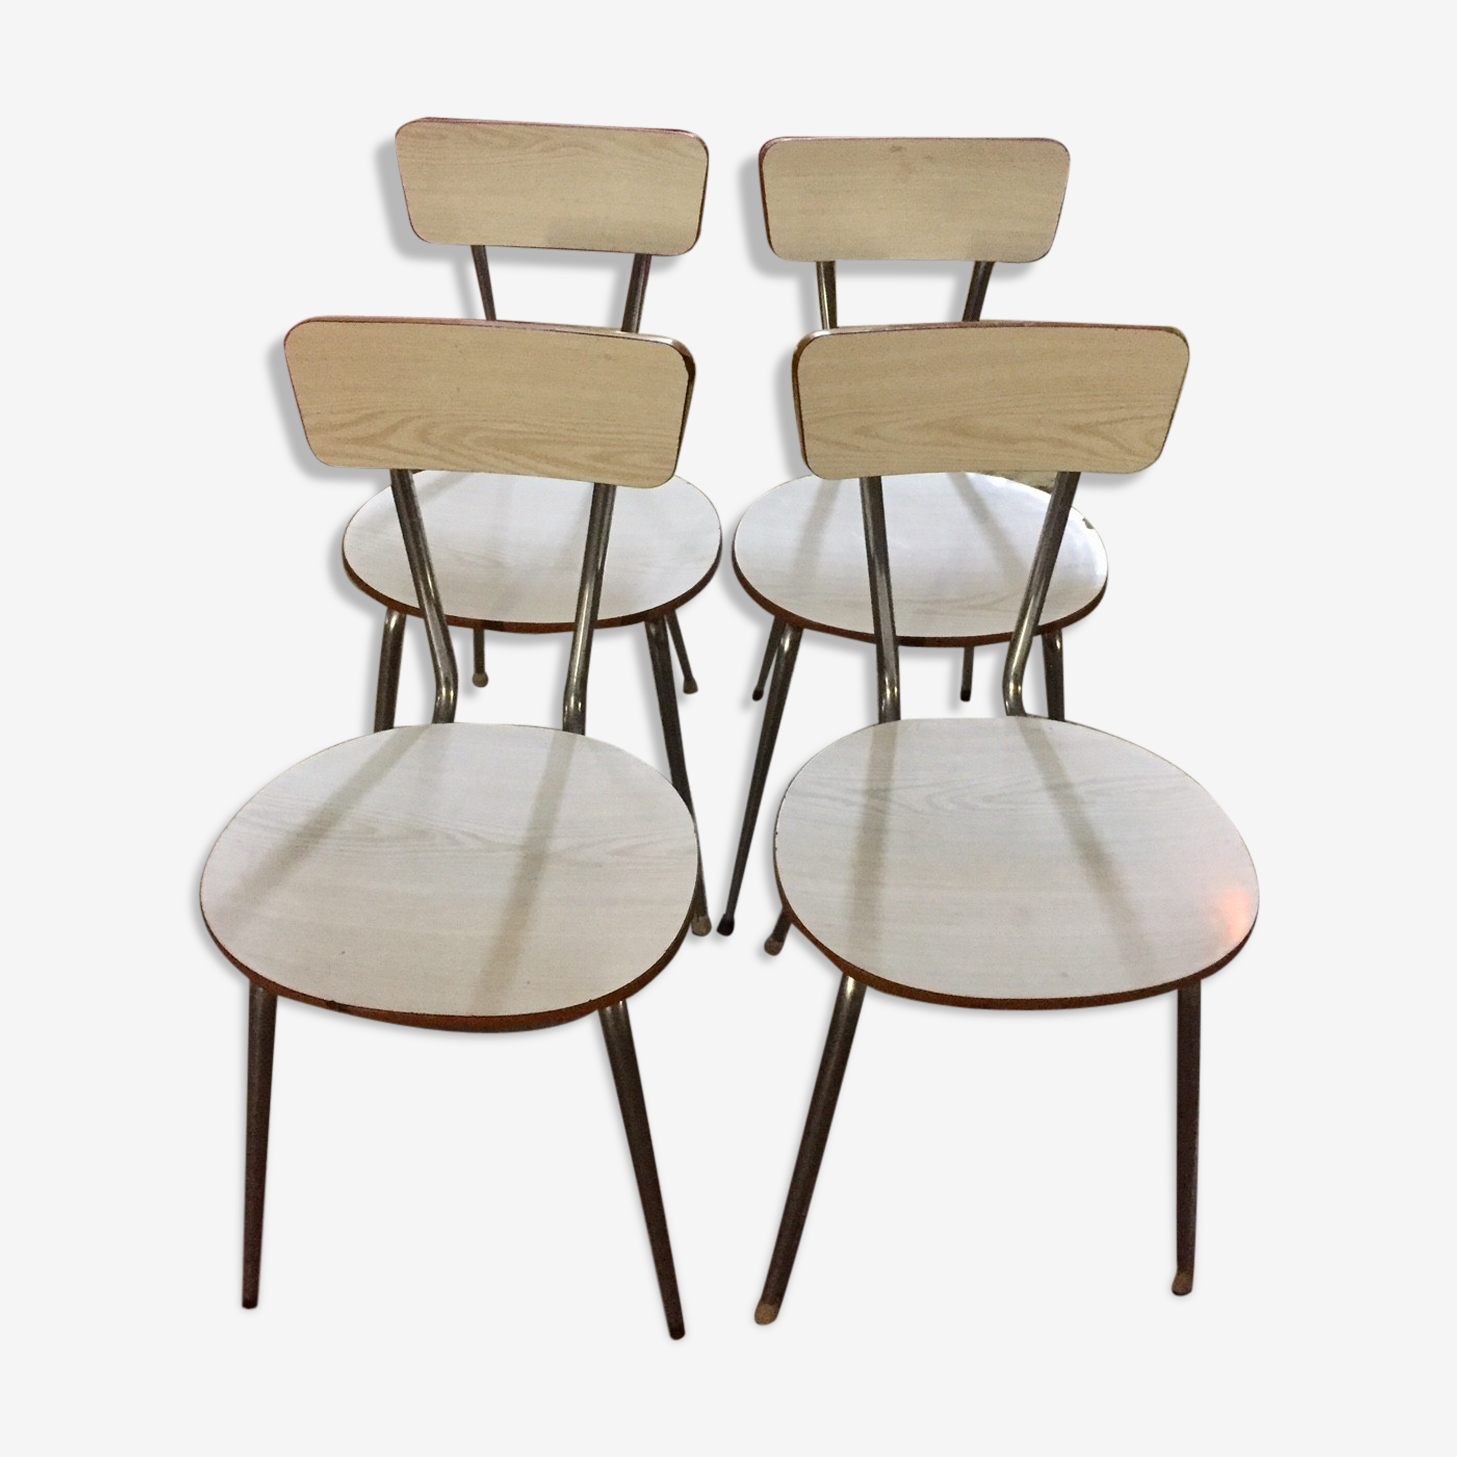 Lot of 4 white chairs